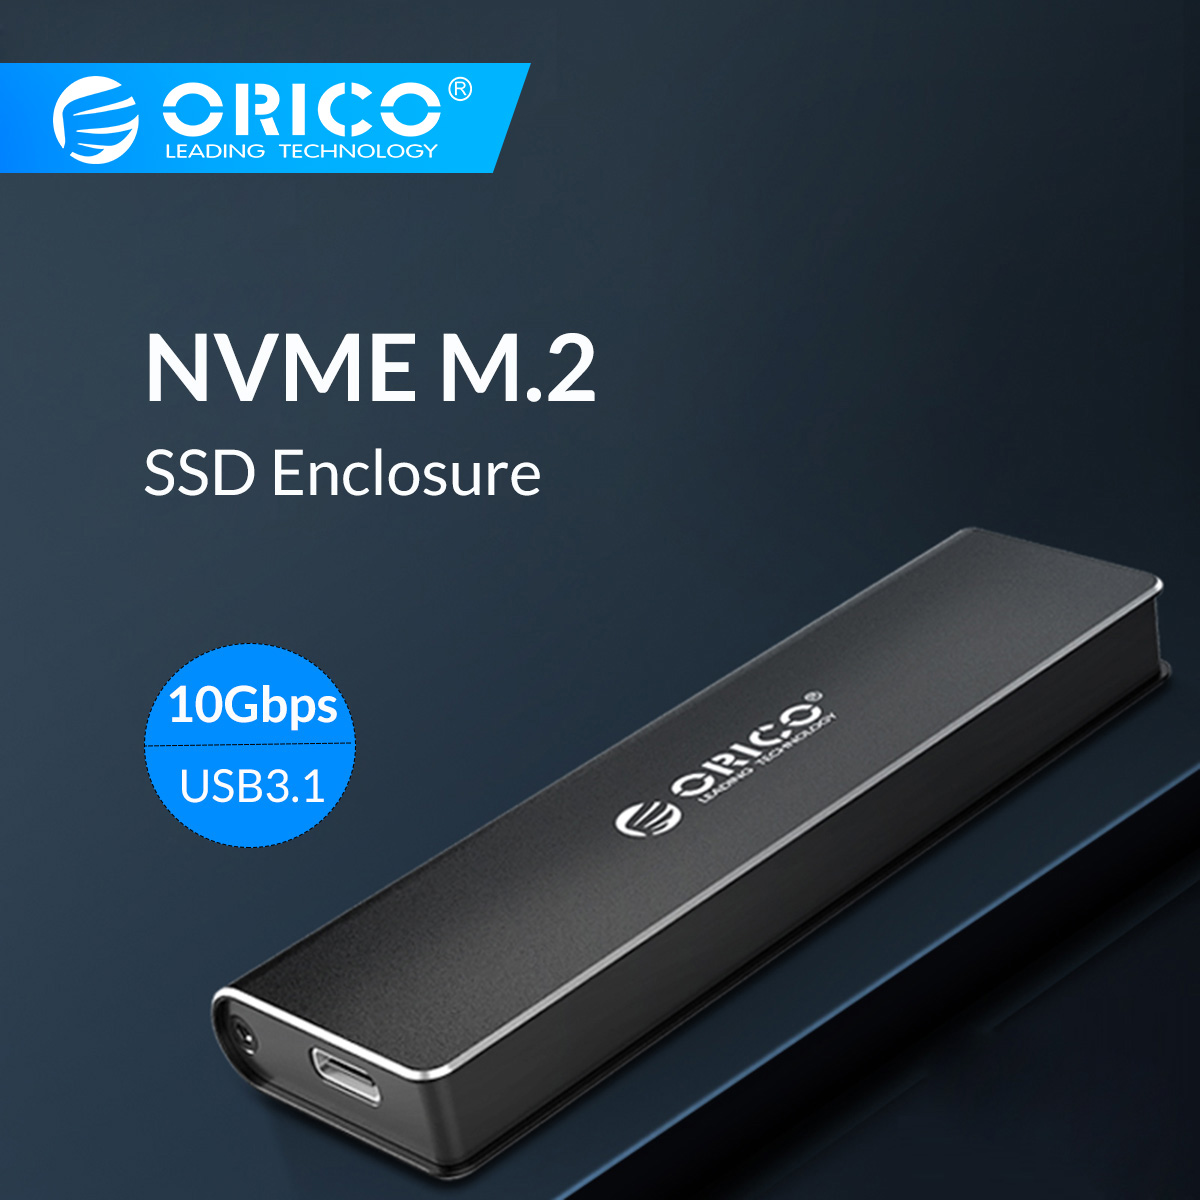 ORICO M.2 NVME SSD Enclosure Type C USB 3.1 Support 10Gbps UASP M.2 USB NVME SSD Case Aluminum Hard Drive Disk Box